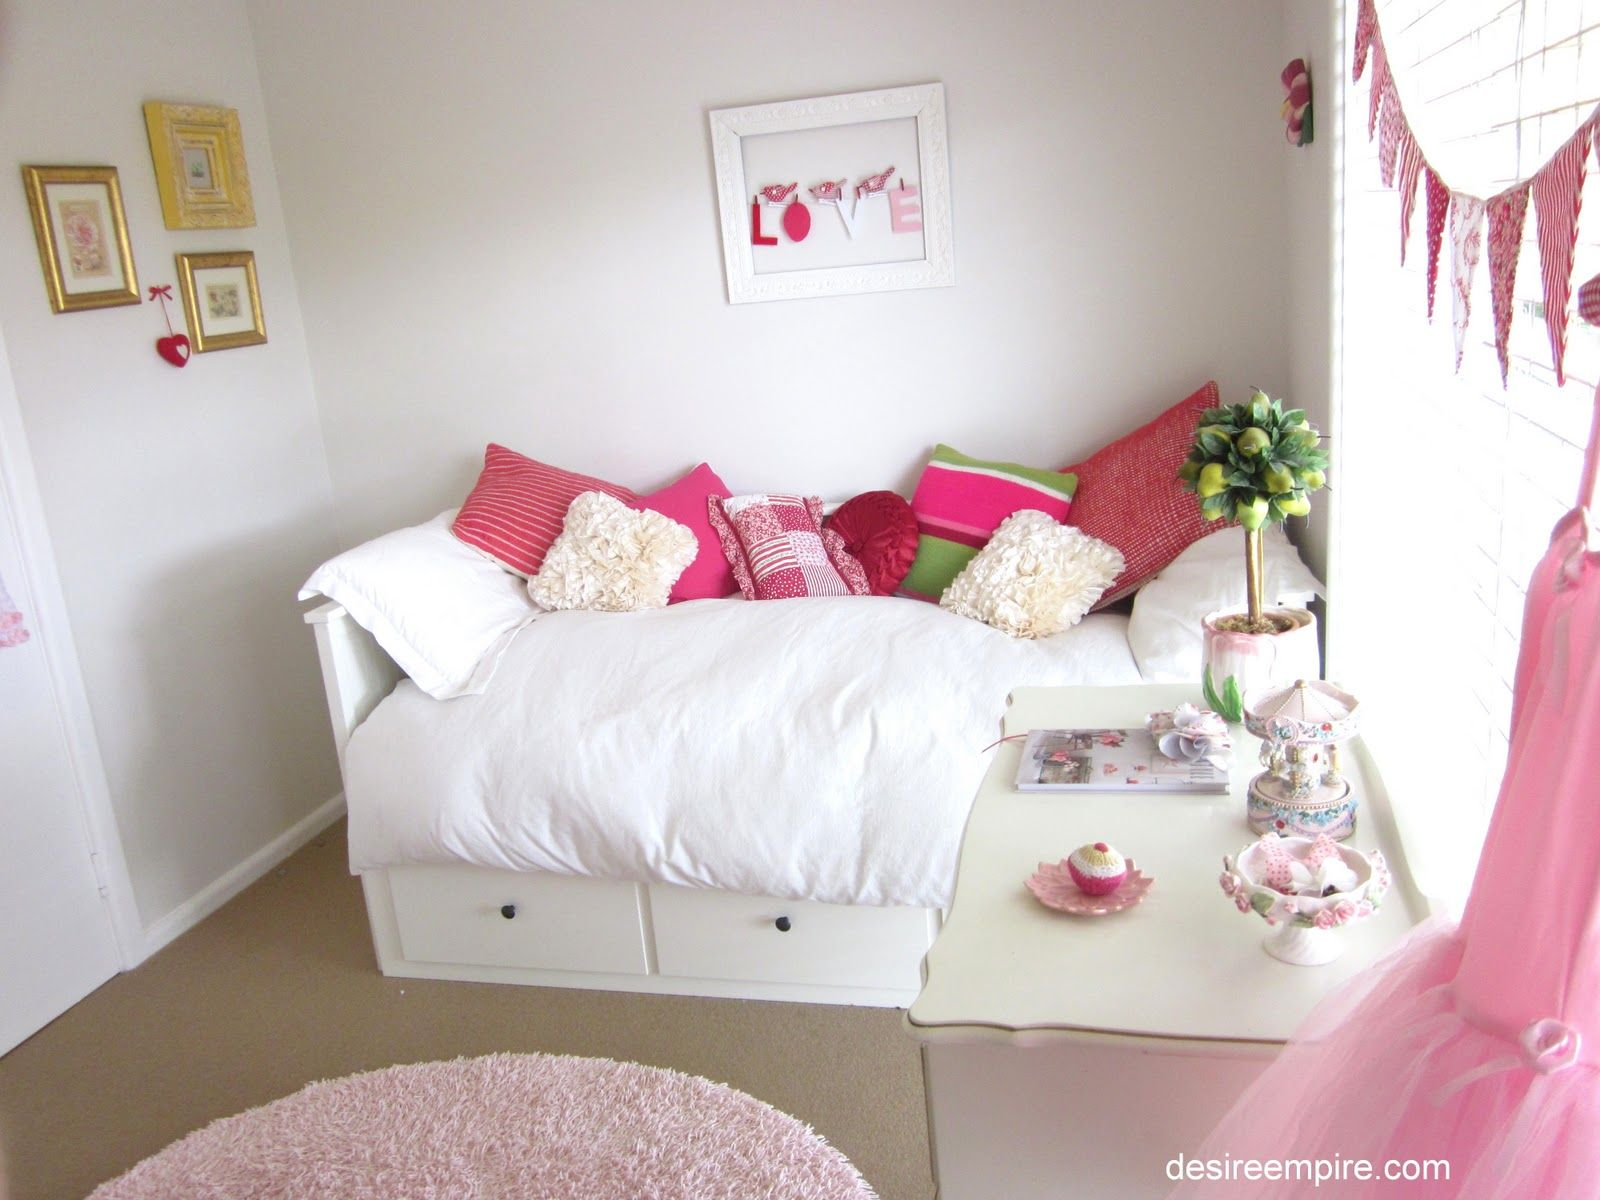 Uncategorized Single Or Double Bed perfect for my closet sized room a single bed double bed